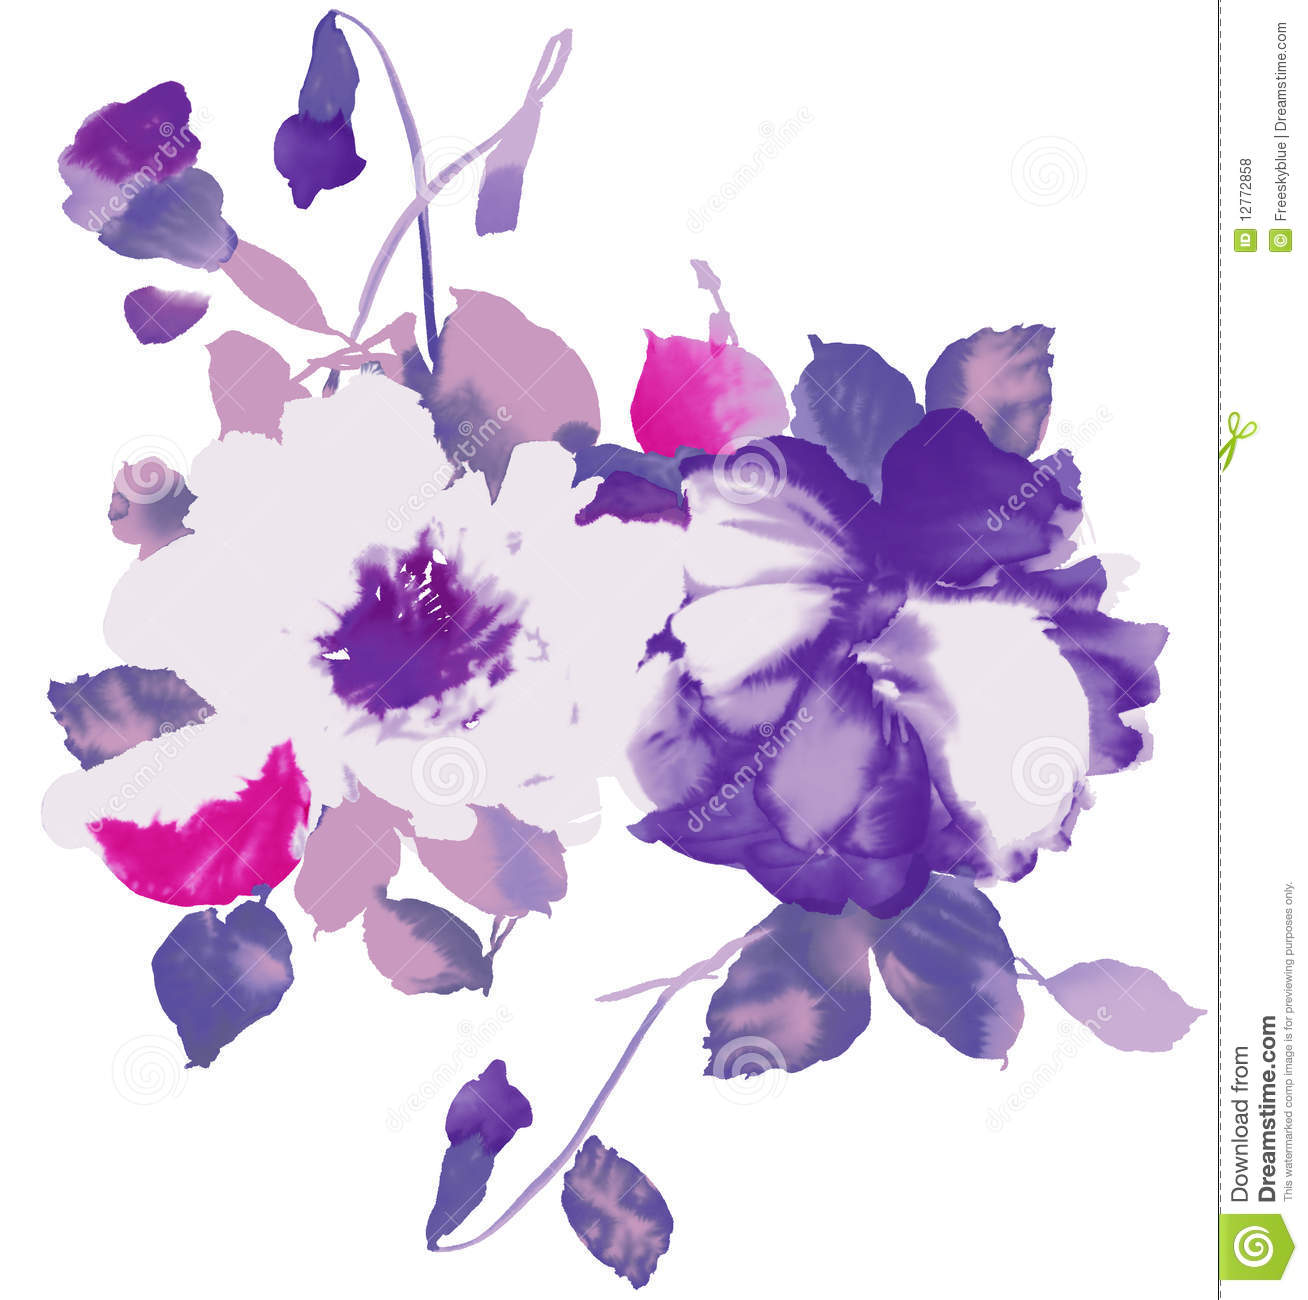 watercolor of purple floral stock illustration illustration of